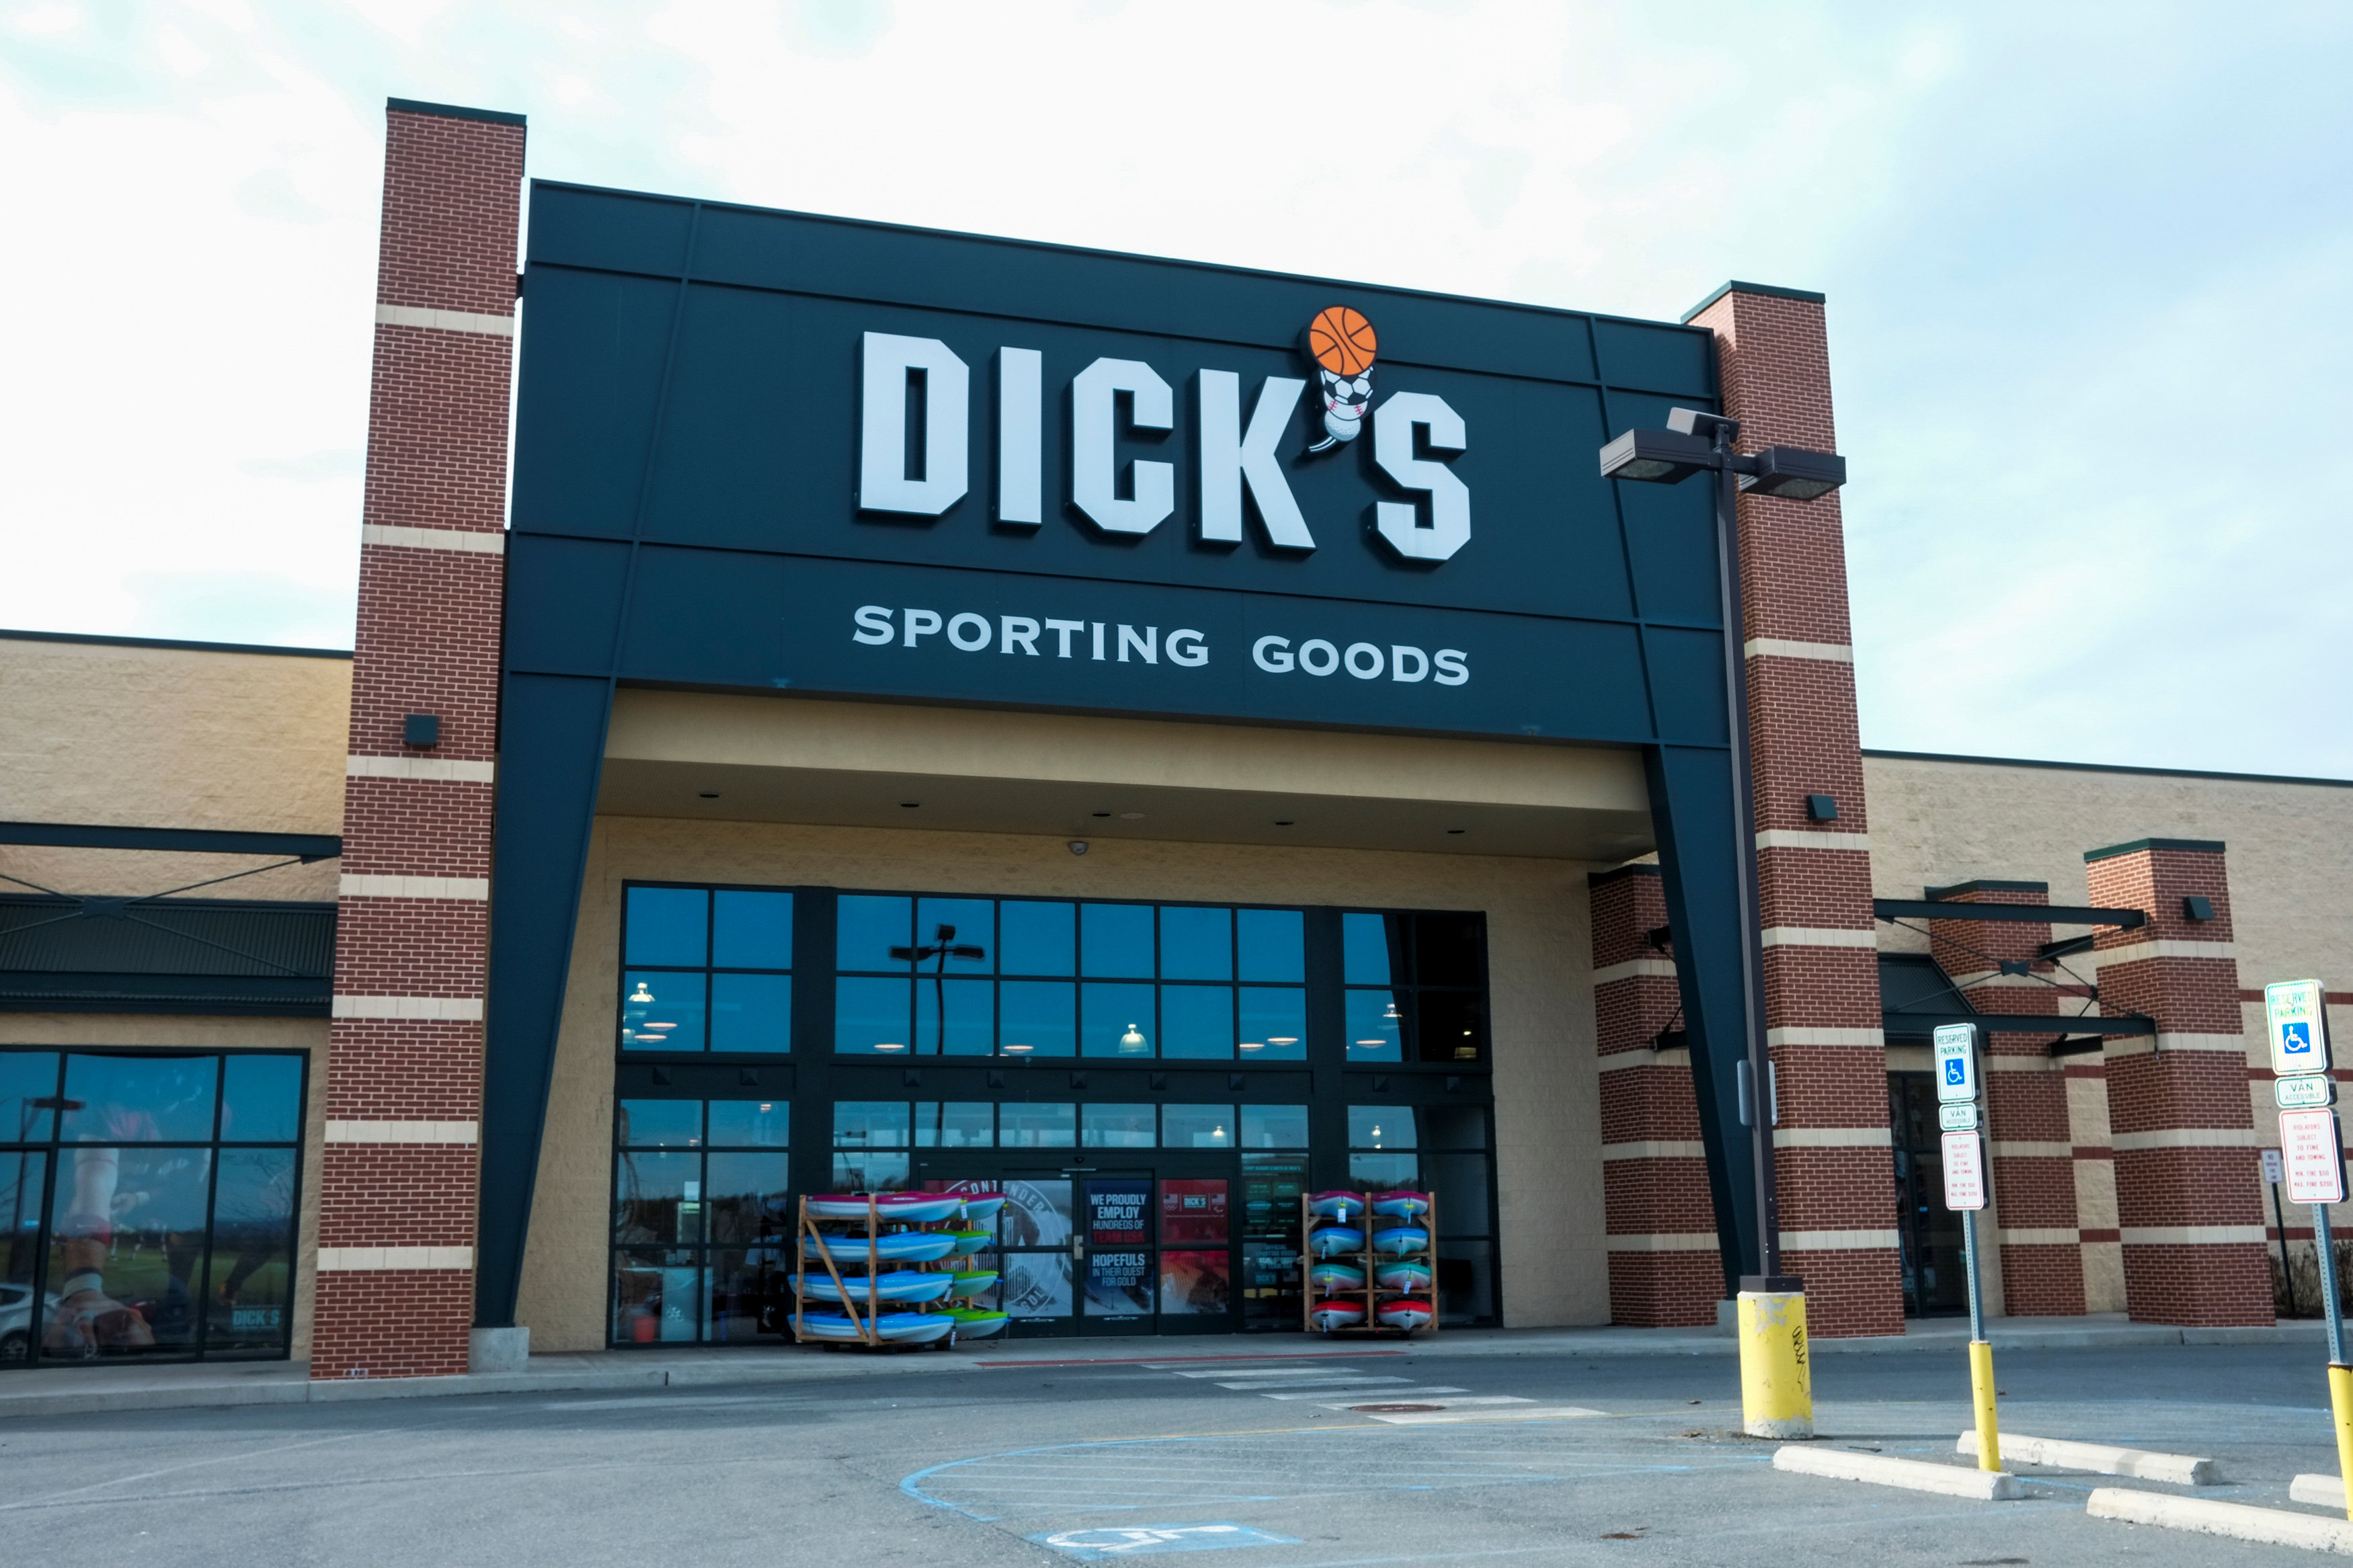 A general view of Dick's Sporting Goods store in Stroudsburg, Pennsylvania, U.S., February 28, 2018. REUTERS/Eduardo Munoz